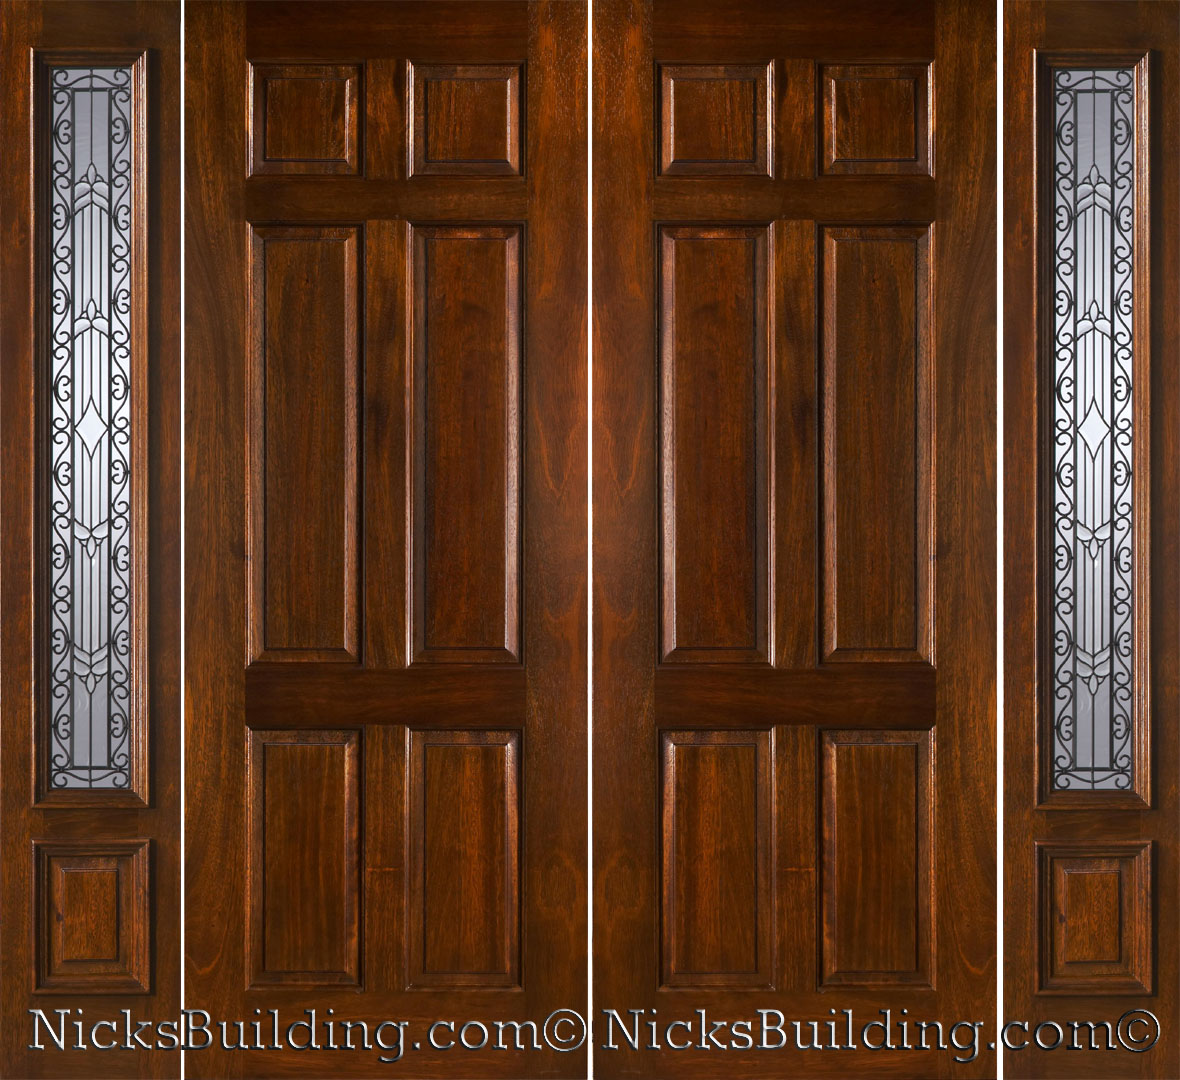 1080 #44240C Mahogany Double Doors With Sidelights In 8ft Height pic 8 Ft Exterior Doors 45111180